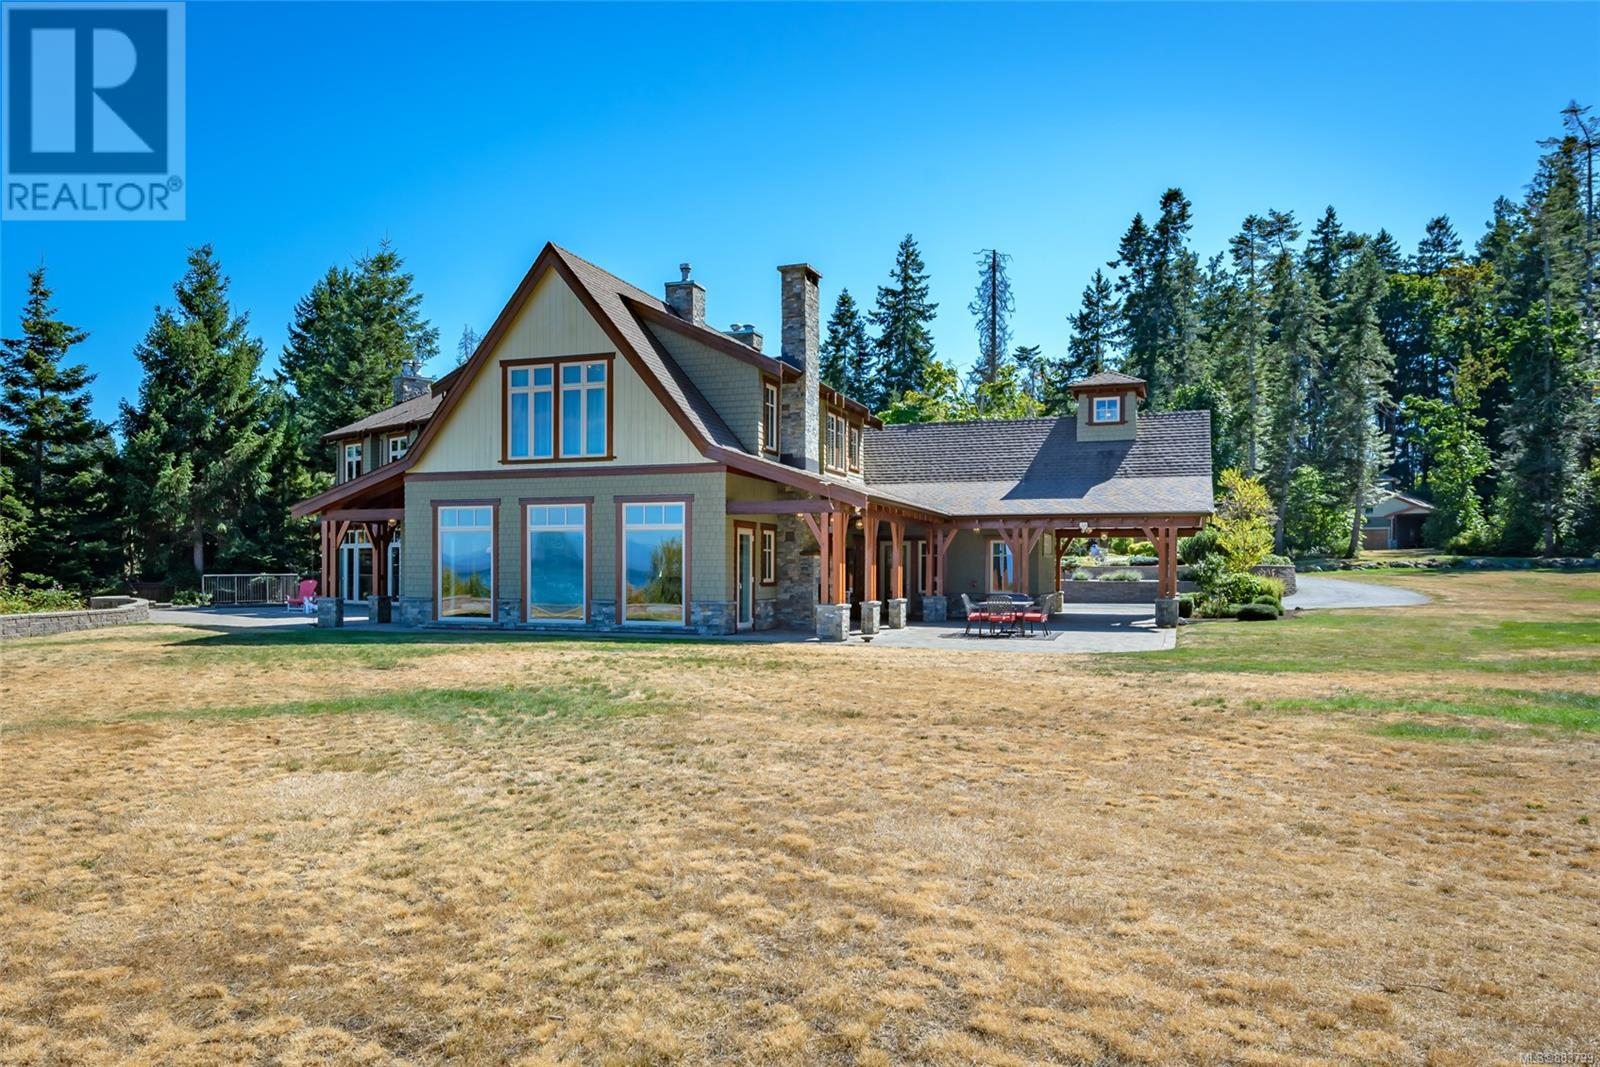 MLS® #883799 - Courtenay House For sale Image #80